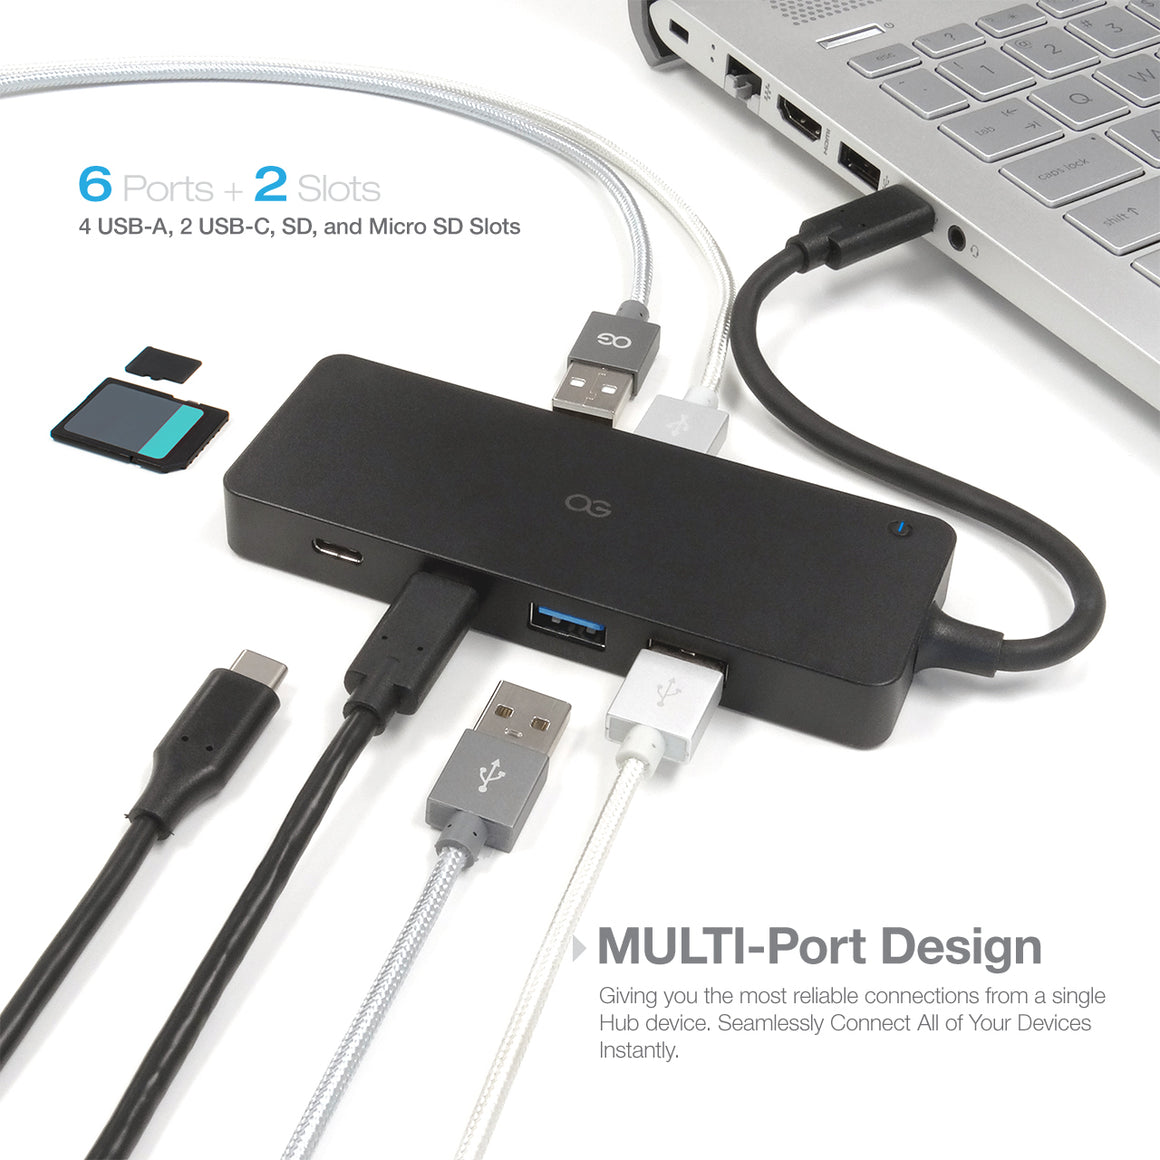 Omnigates Type-C USB Hub - 4 USB 3.0 Ports, 2 Type-C Ports, 1 SD/Micro SD Card Reader